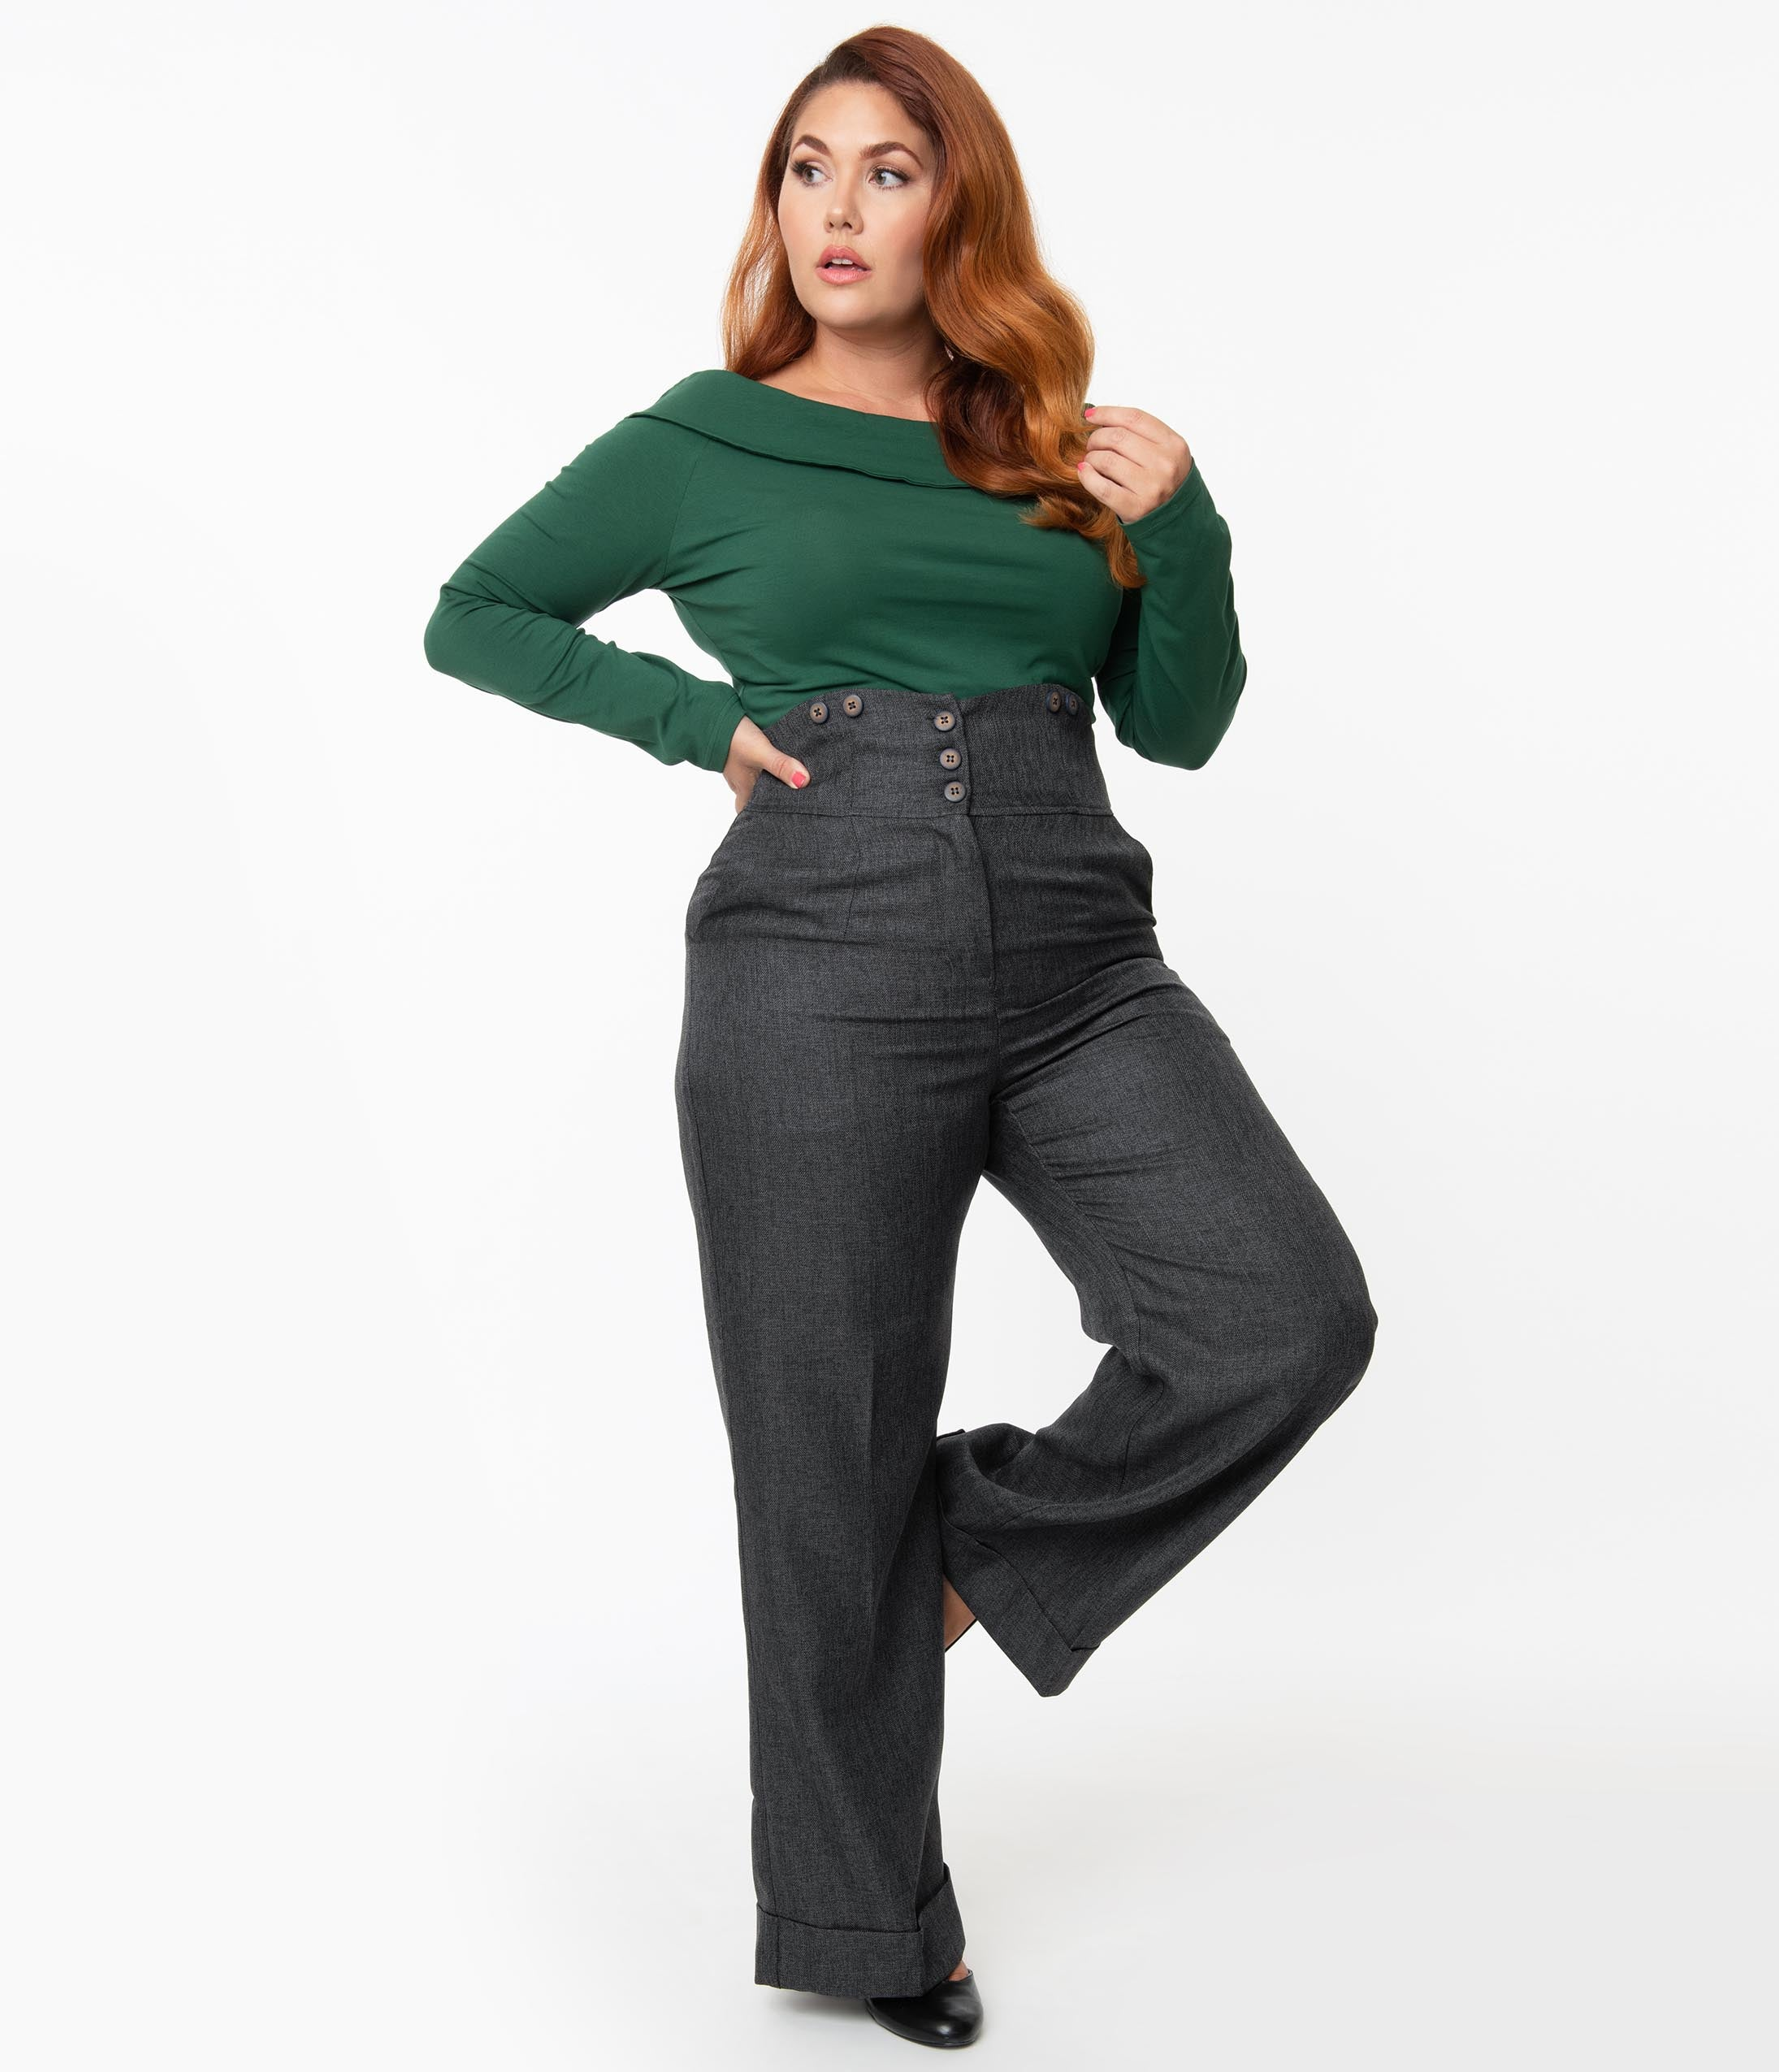 1950s Pants History for Women Plus Size 1950S Style Grey High Waist Pants $58.00 AT vintagedancer.com